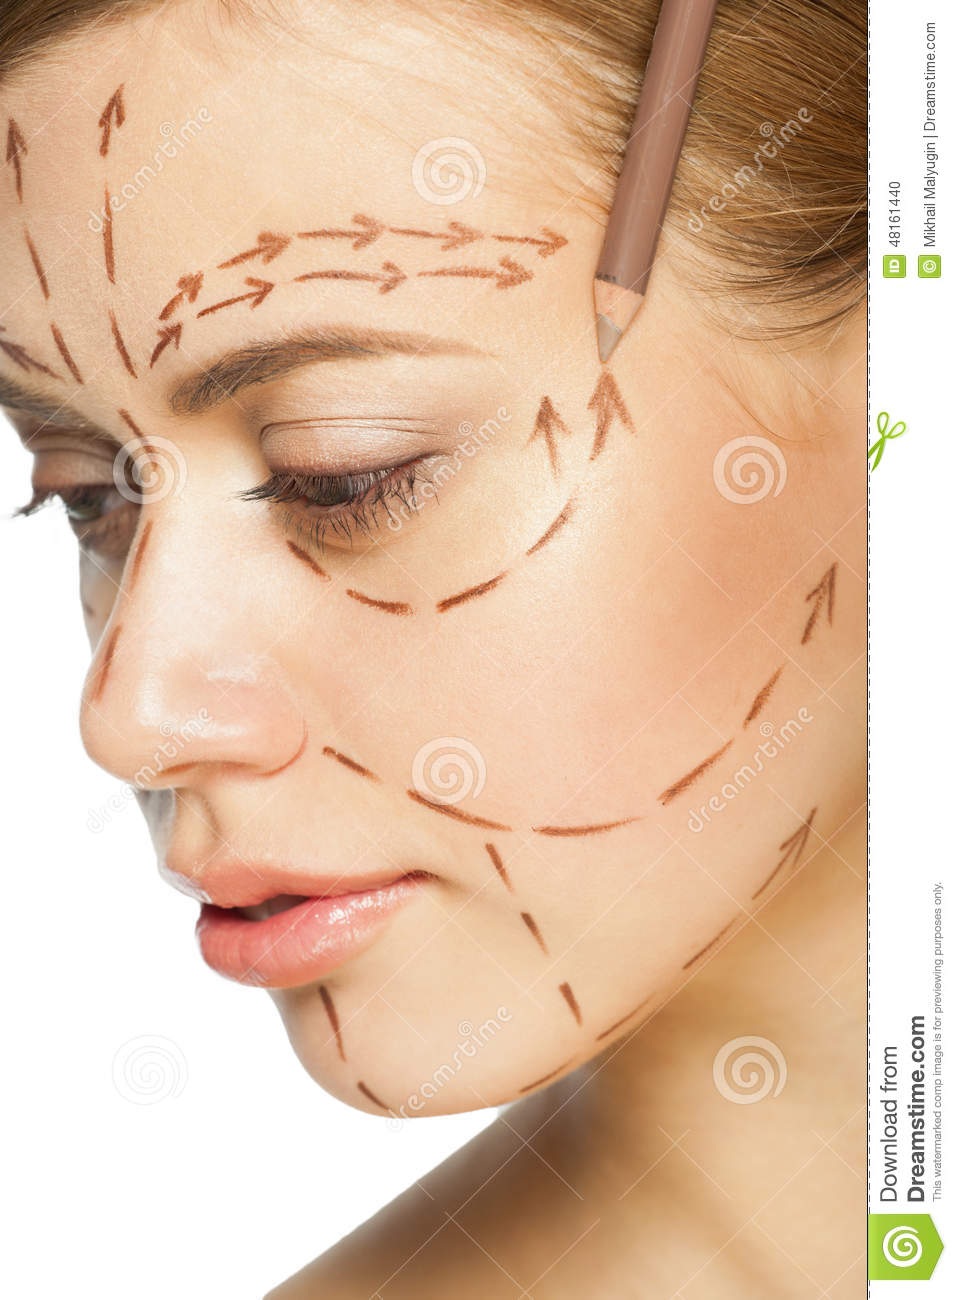 how plastic surgery promotes beauty Plastic surgery plastic surgery is a medical specialty concerned with the correction or restoration of form and function though cosmetic or aesthetic surgery is the best-known kind of plastic surgery, most plastic surgery is not cosmetic: plastic surgery includes many types of reconstructive.